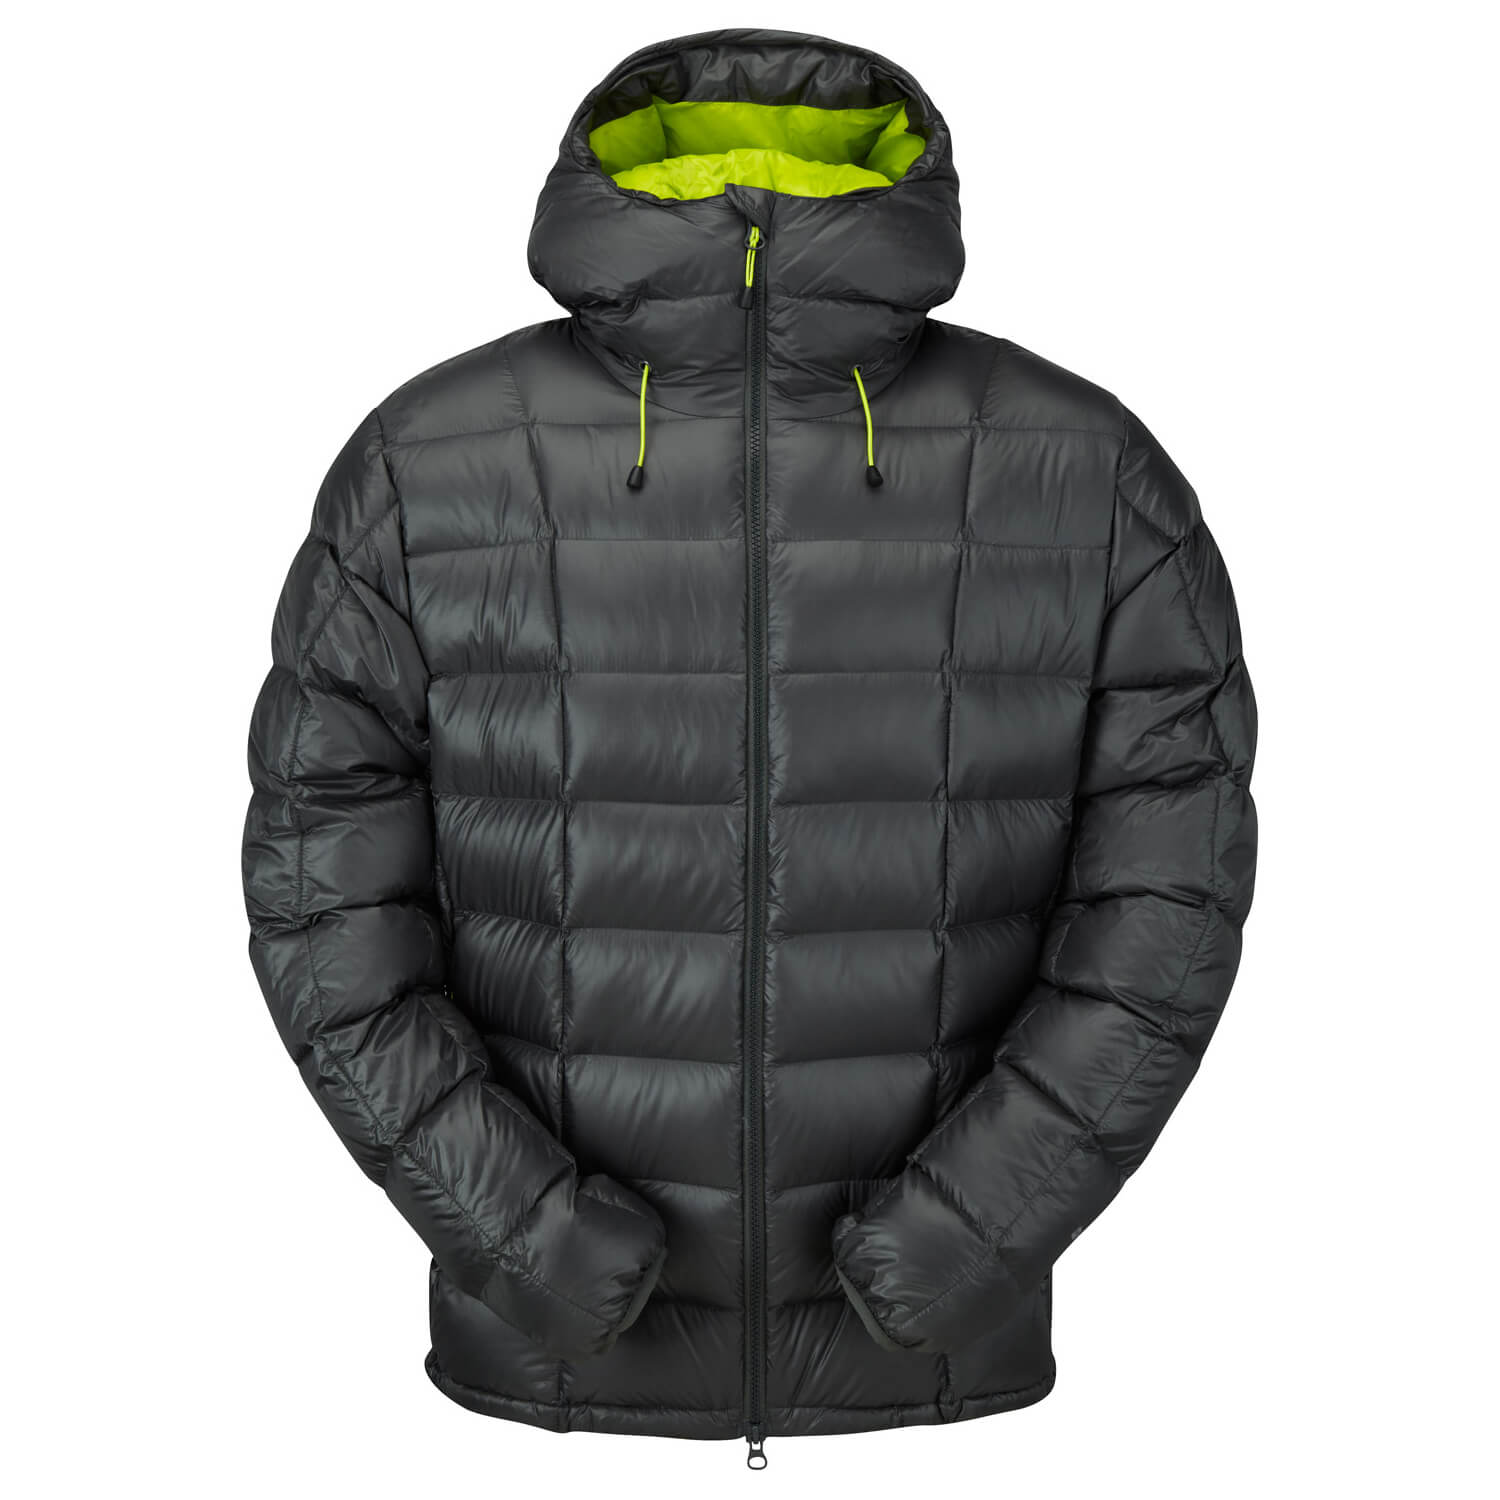 mountain equipment lumin jacket daunenjacke. Black Bedroom Furniture Sets. Home Design Ideas